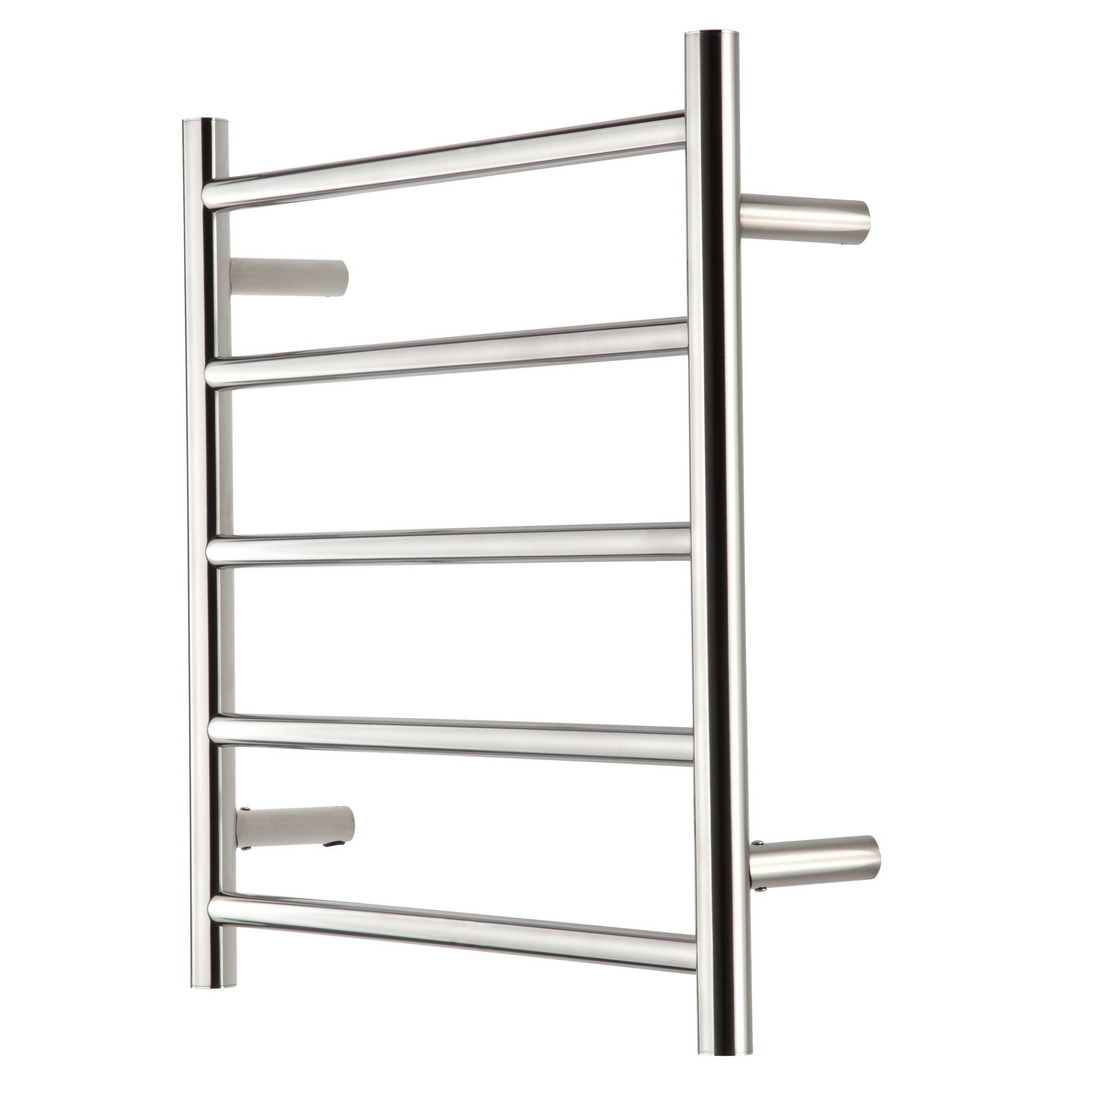 Raymor R Series Round Towel Warmer 600 x 122 x 560 mm 5 Rail Stainless Steel High Polish WHRC560